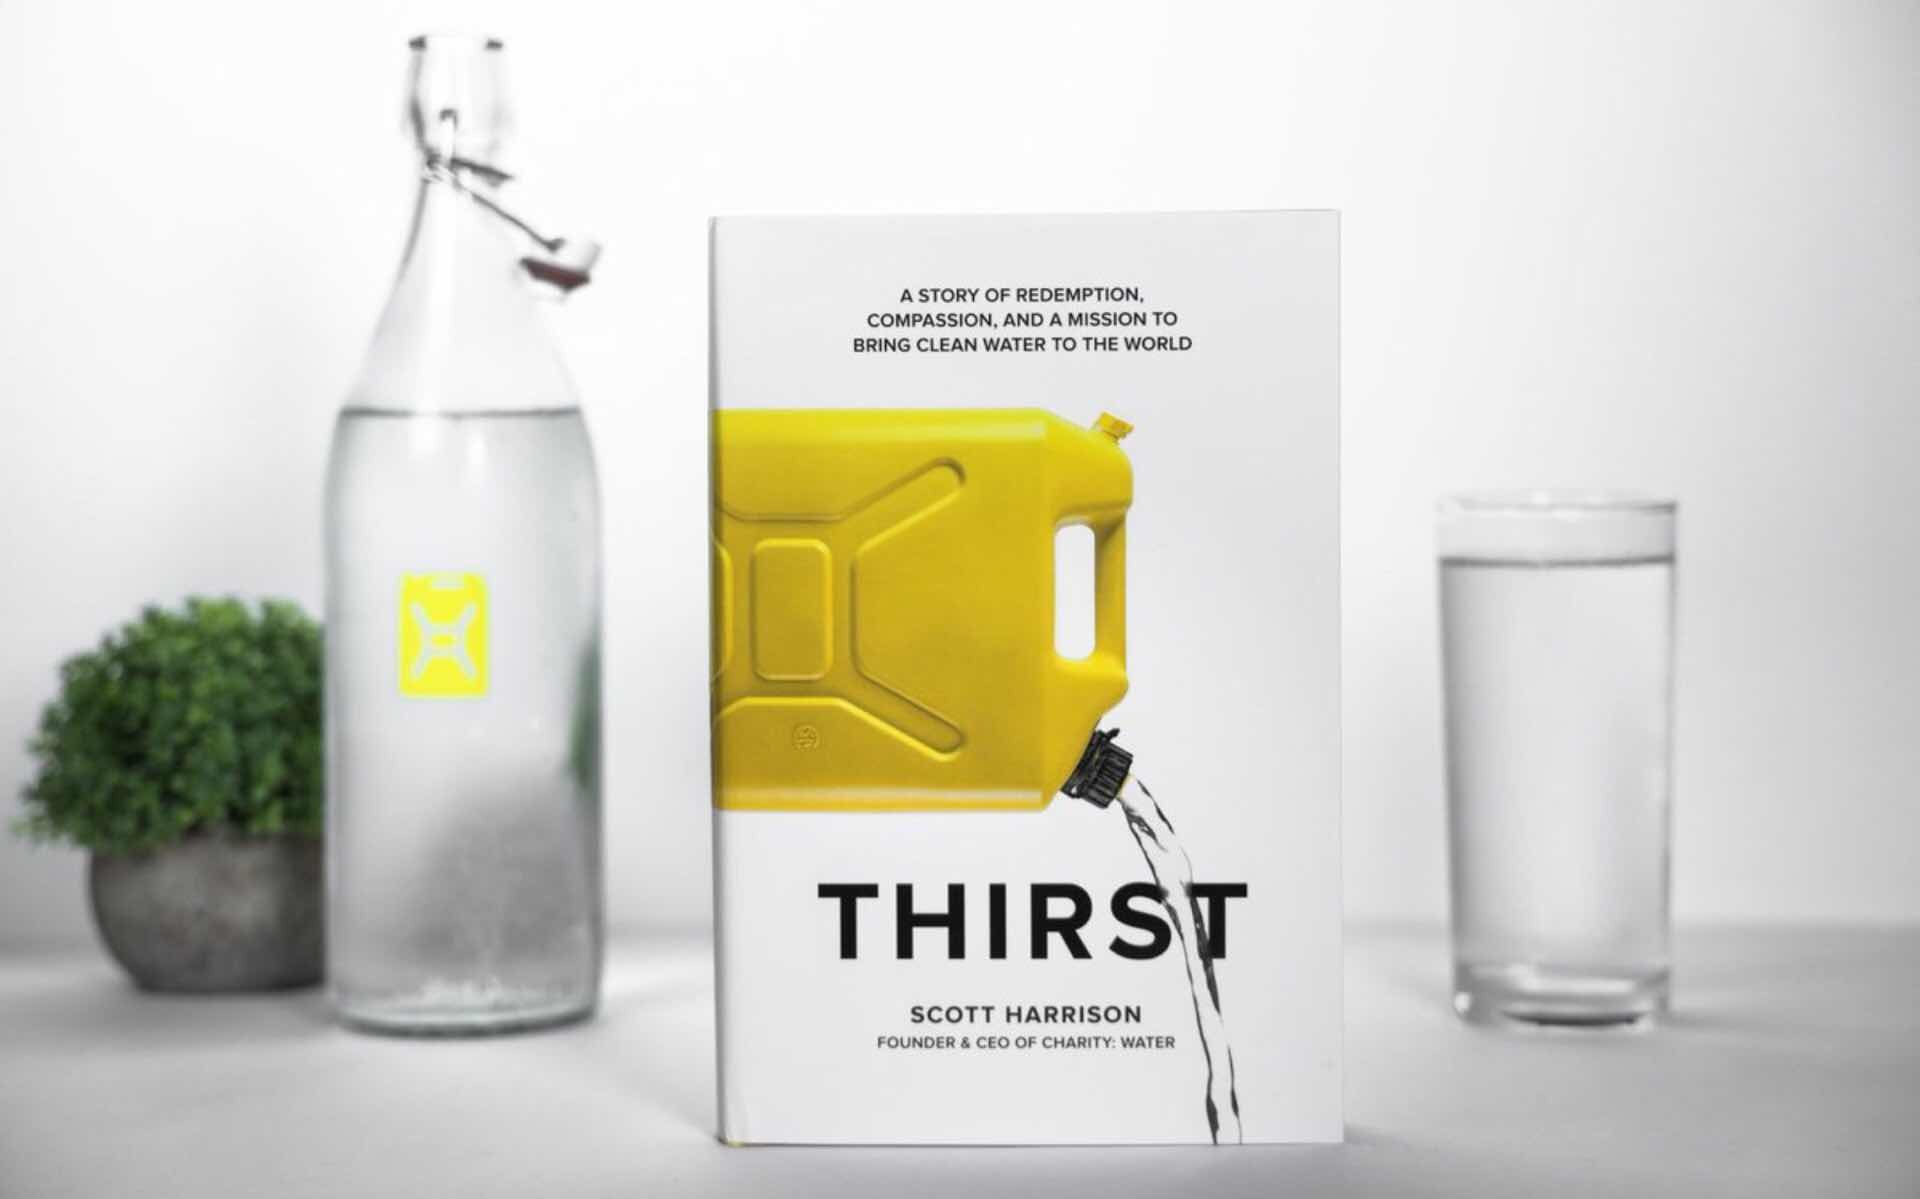 Thirst by Scott Harrison, with contribution by Lisa Sweetingham.